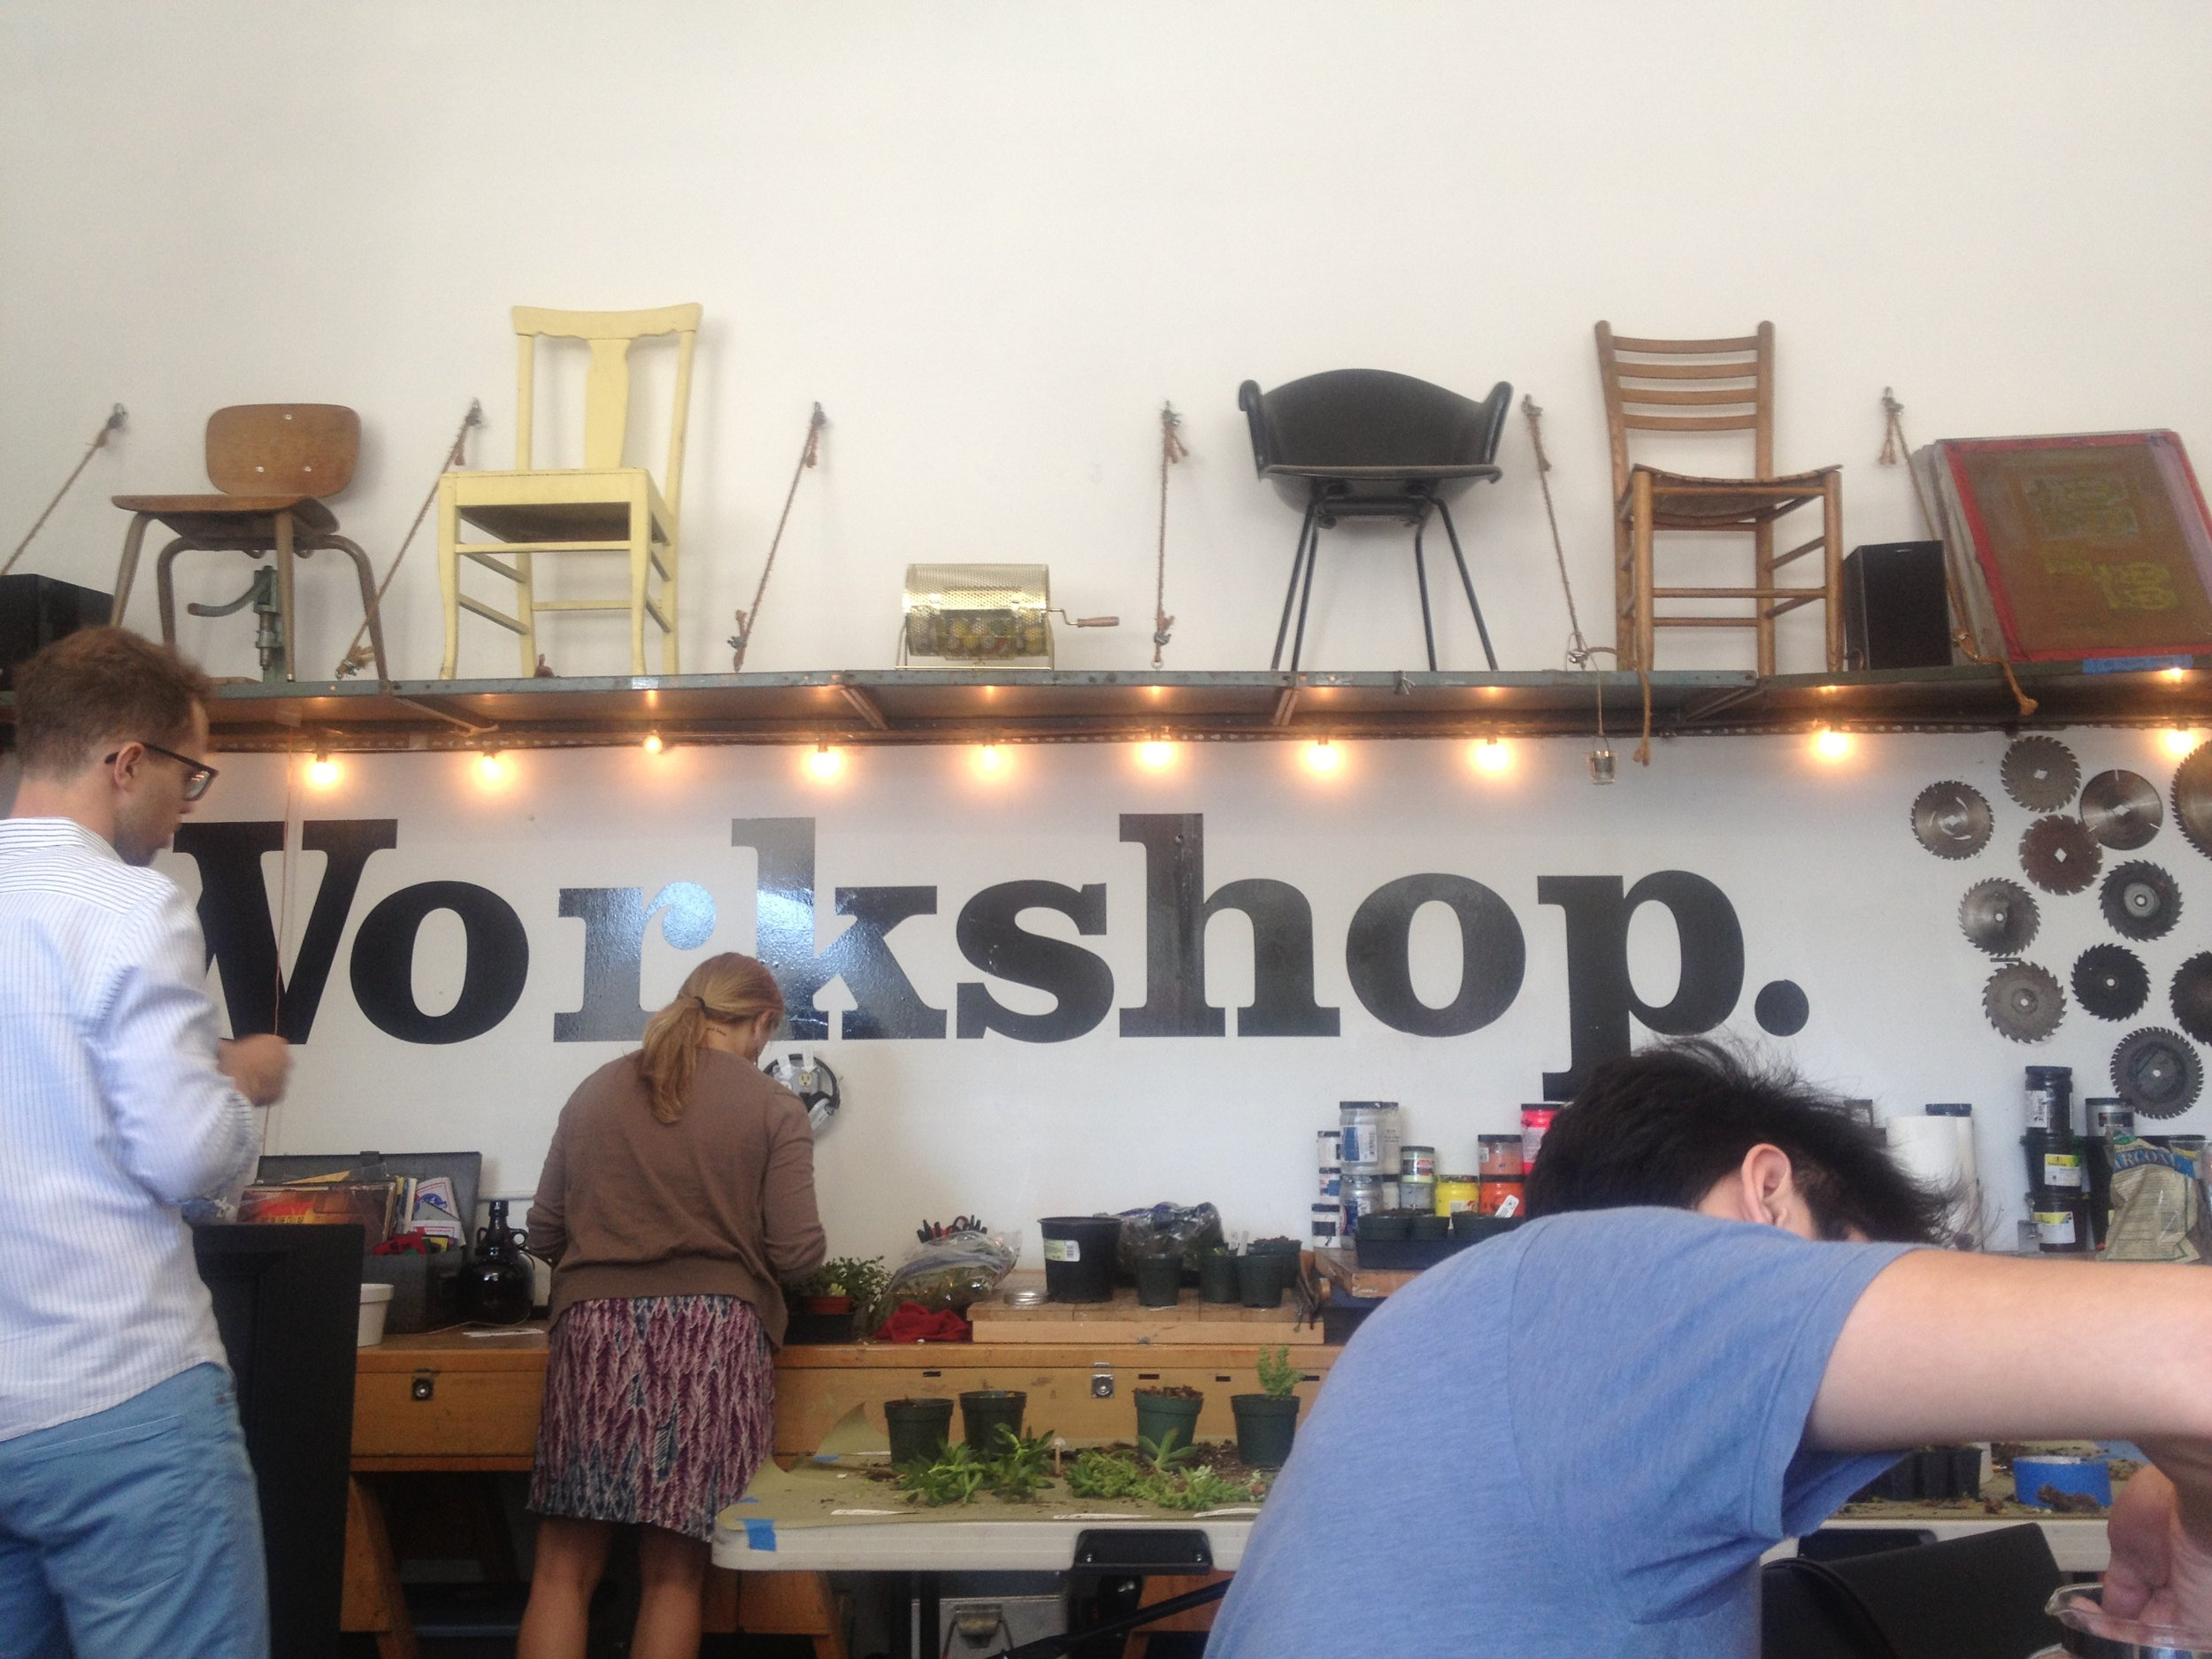 A hidden gem of San Francisco. Workshop offers amazing DIY classes. A San Francisco must-do!